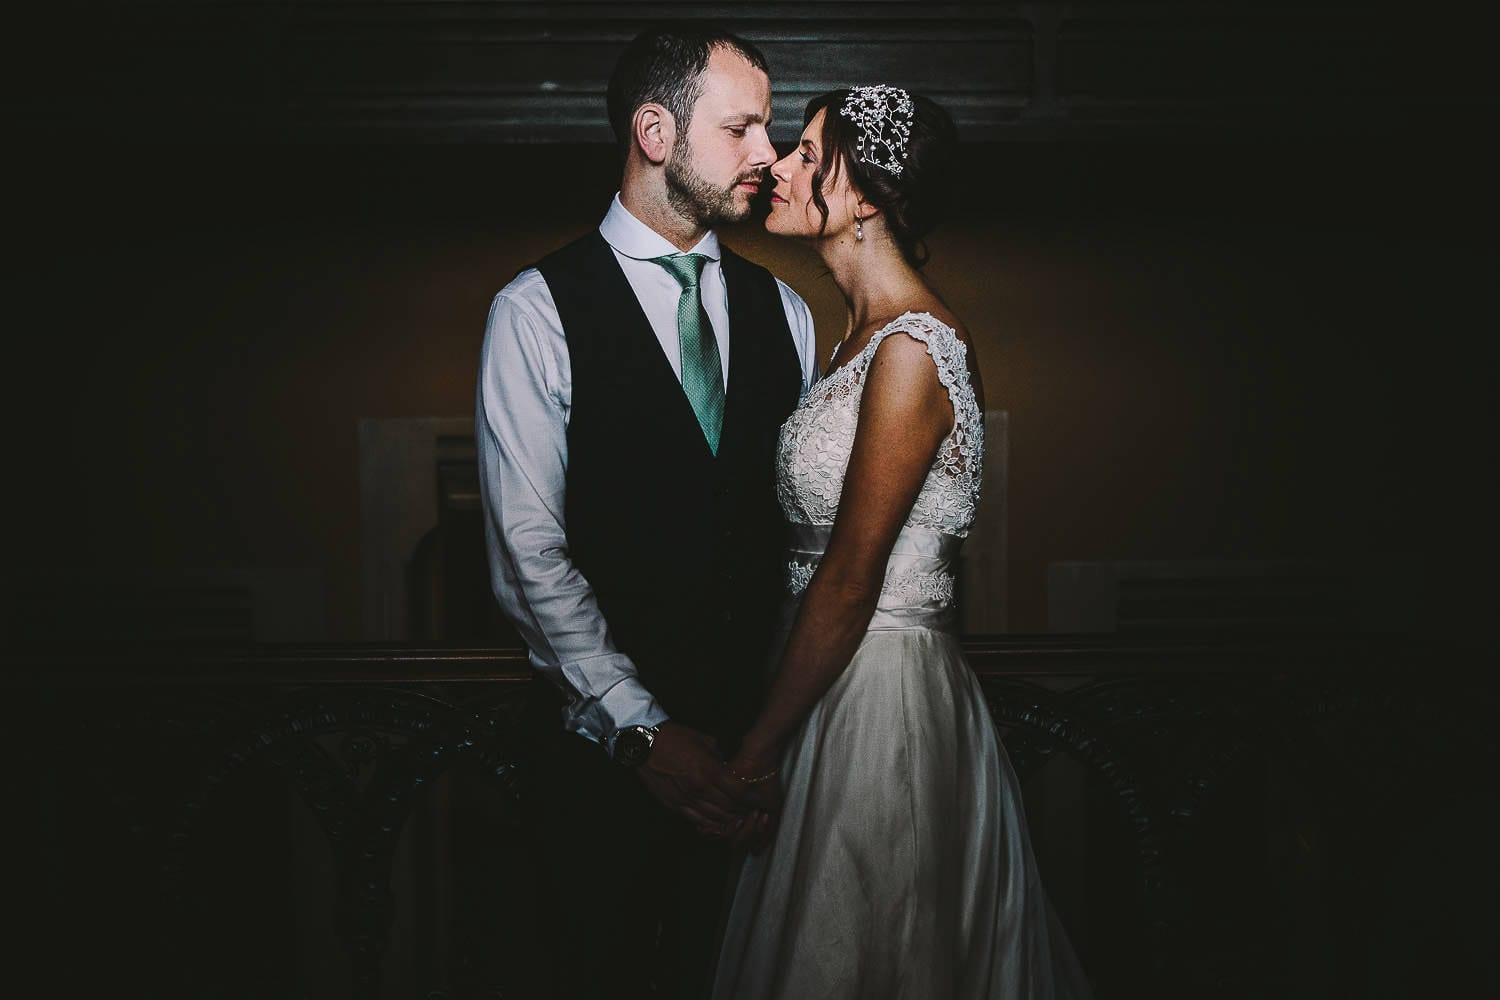 A portrait of the bride and groom at Grittleton House